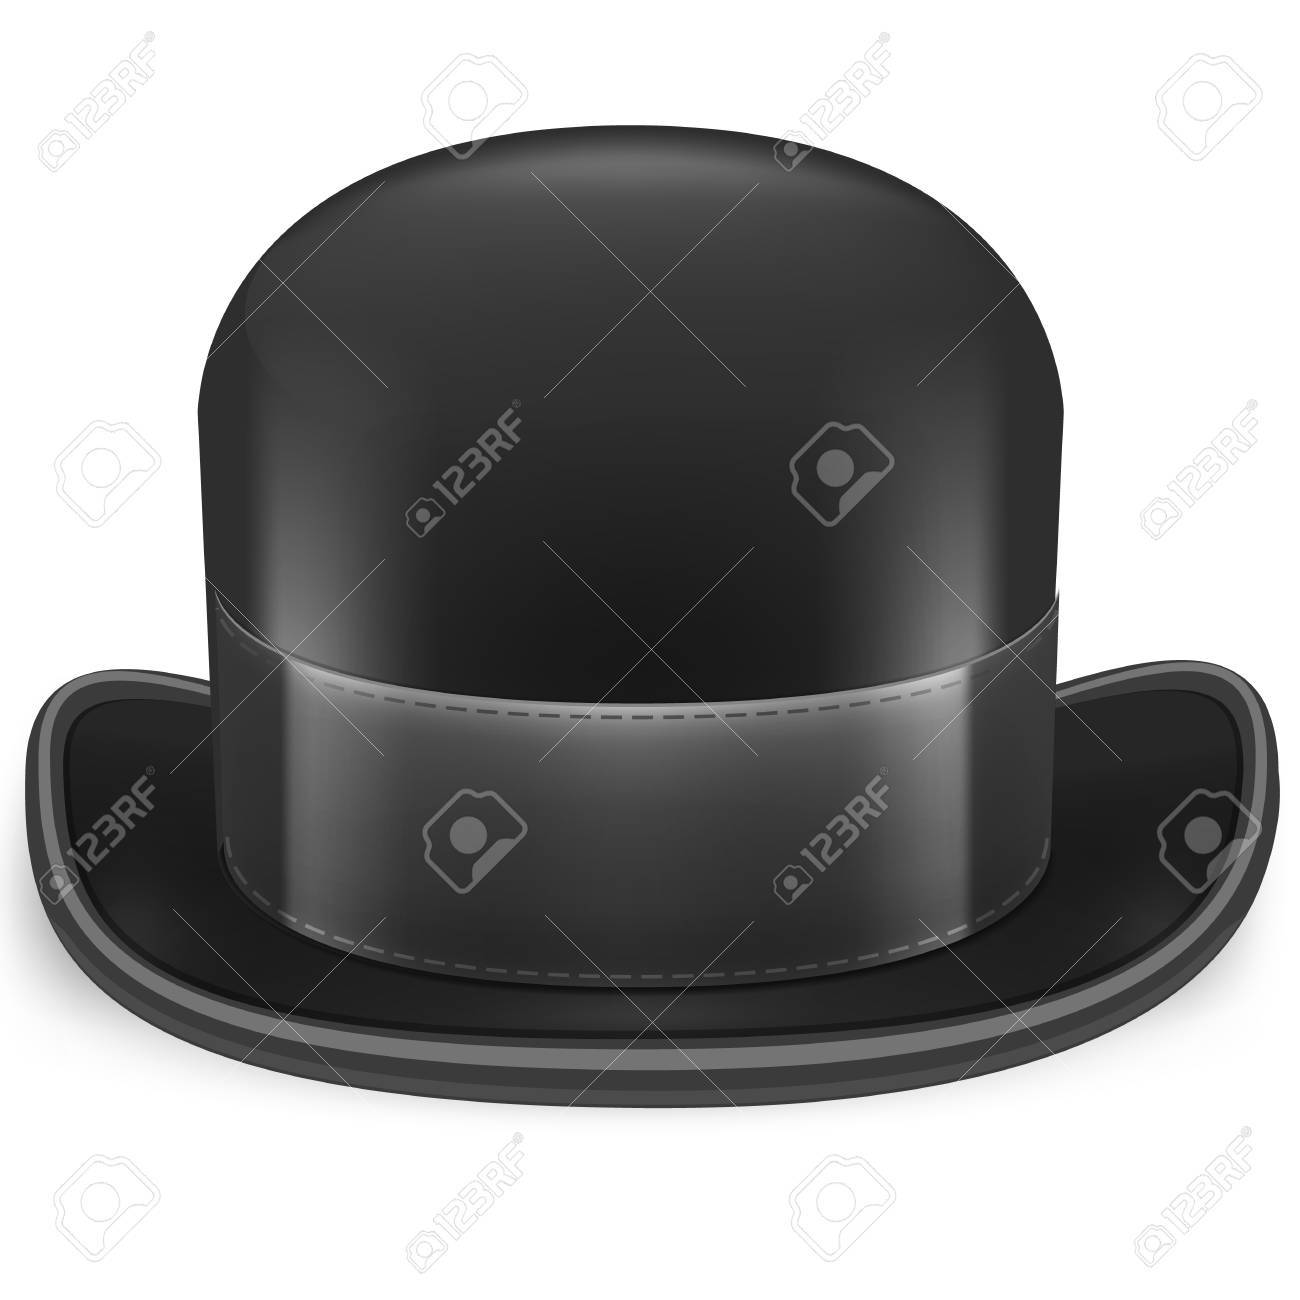 10d4519de34 Black Bowler Hat On A White Background Royalty Free Cliparts ...